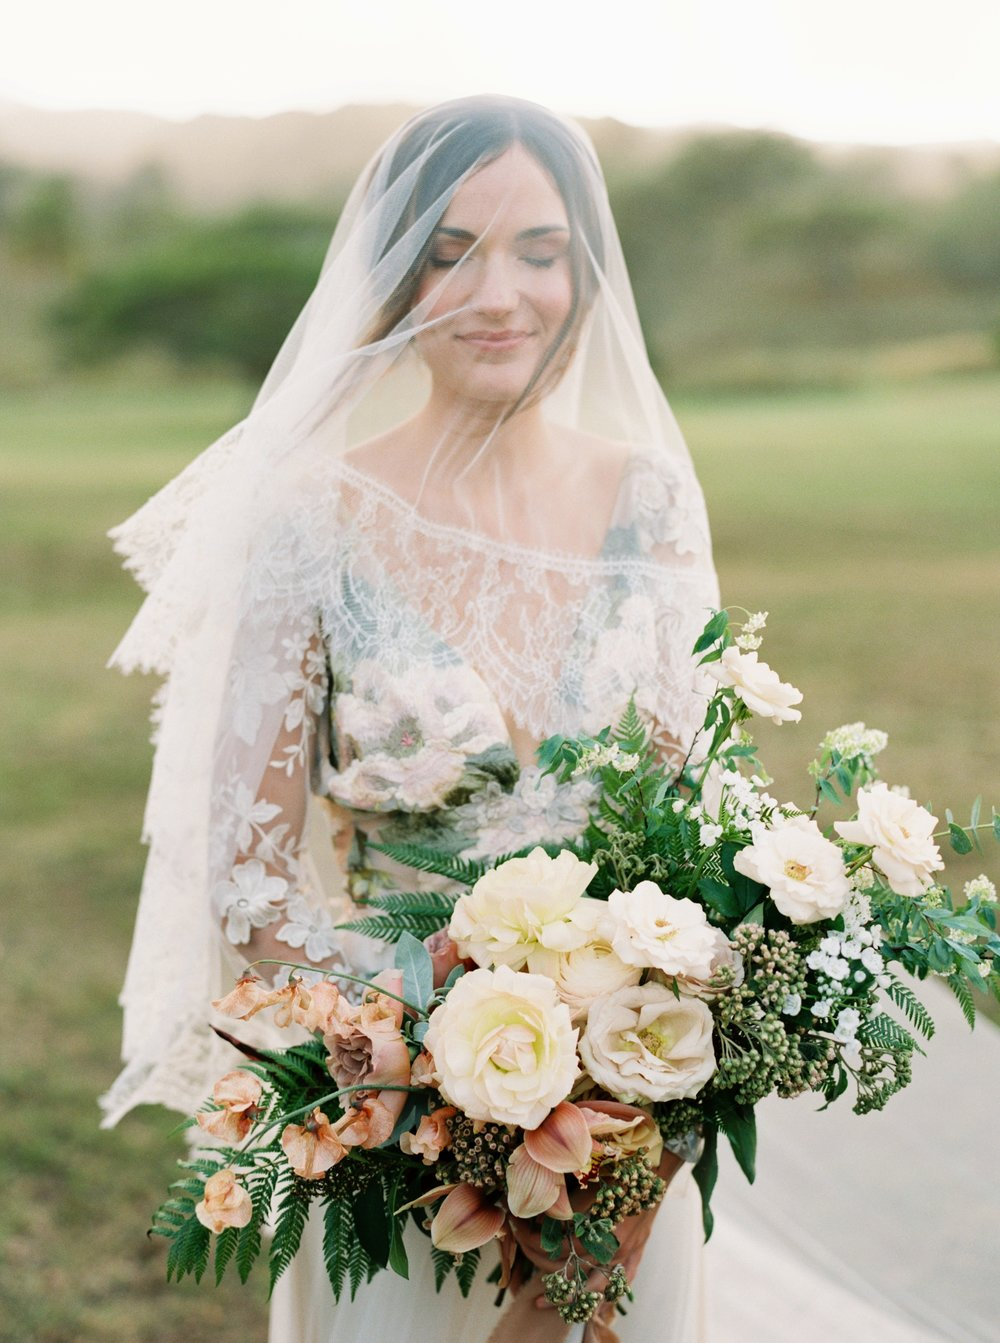 Bride with bouquet and veil on top